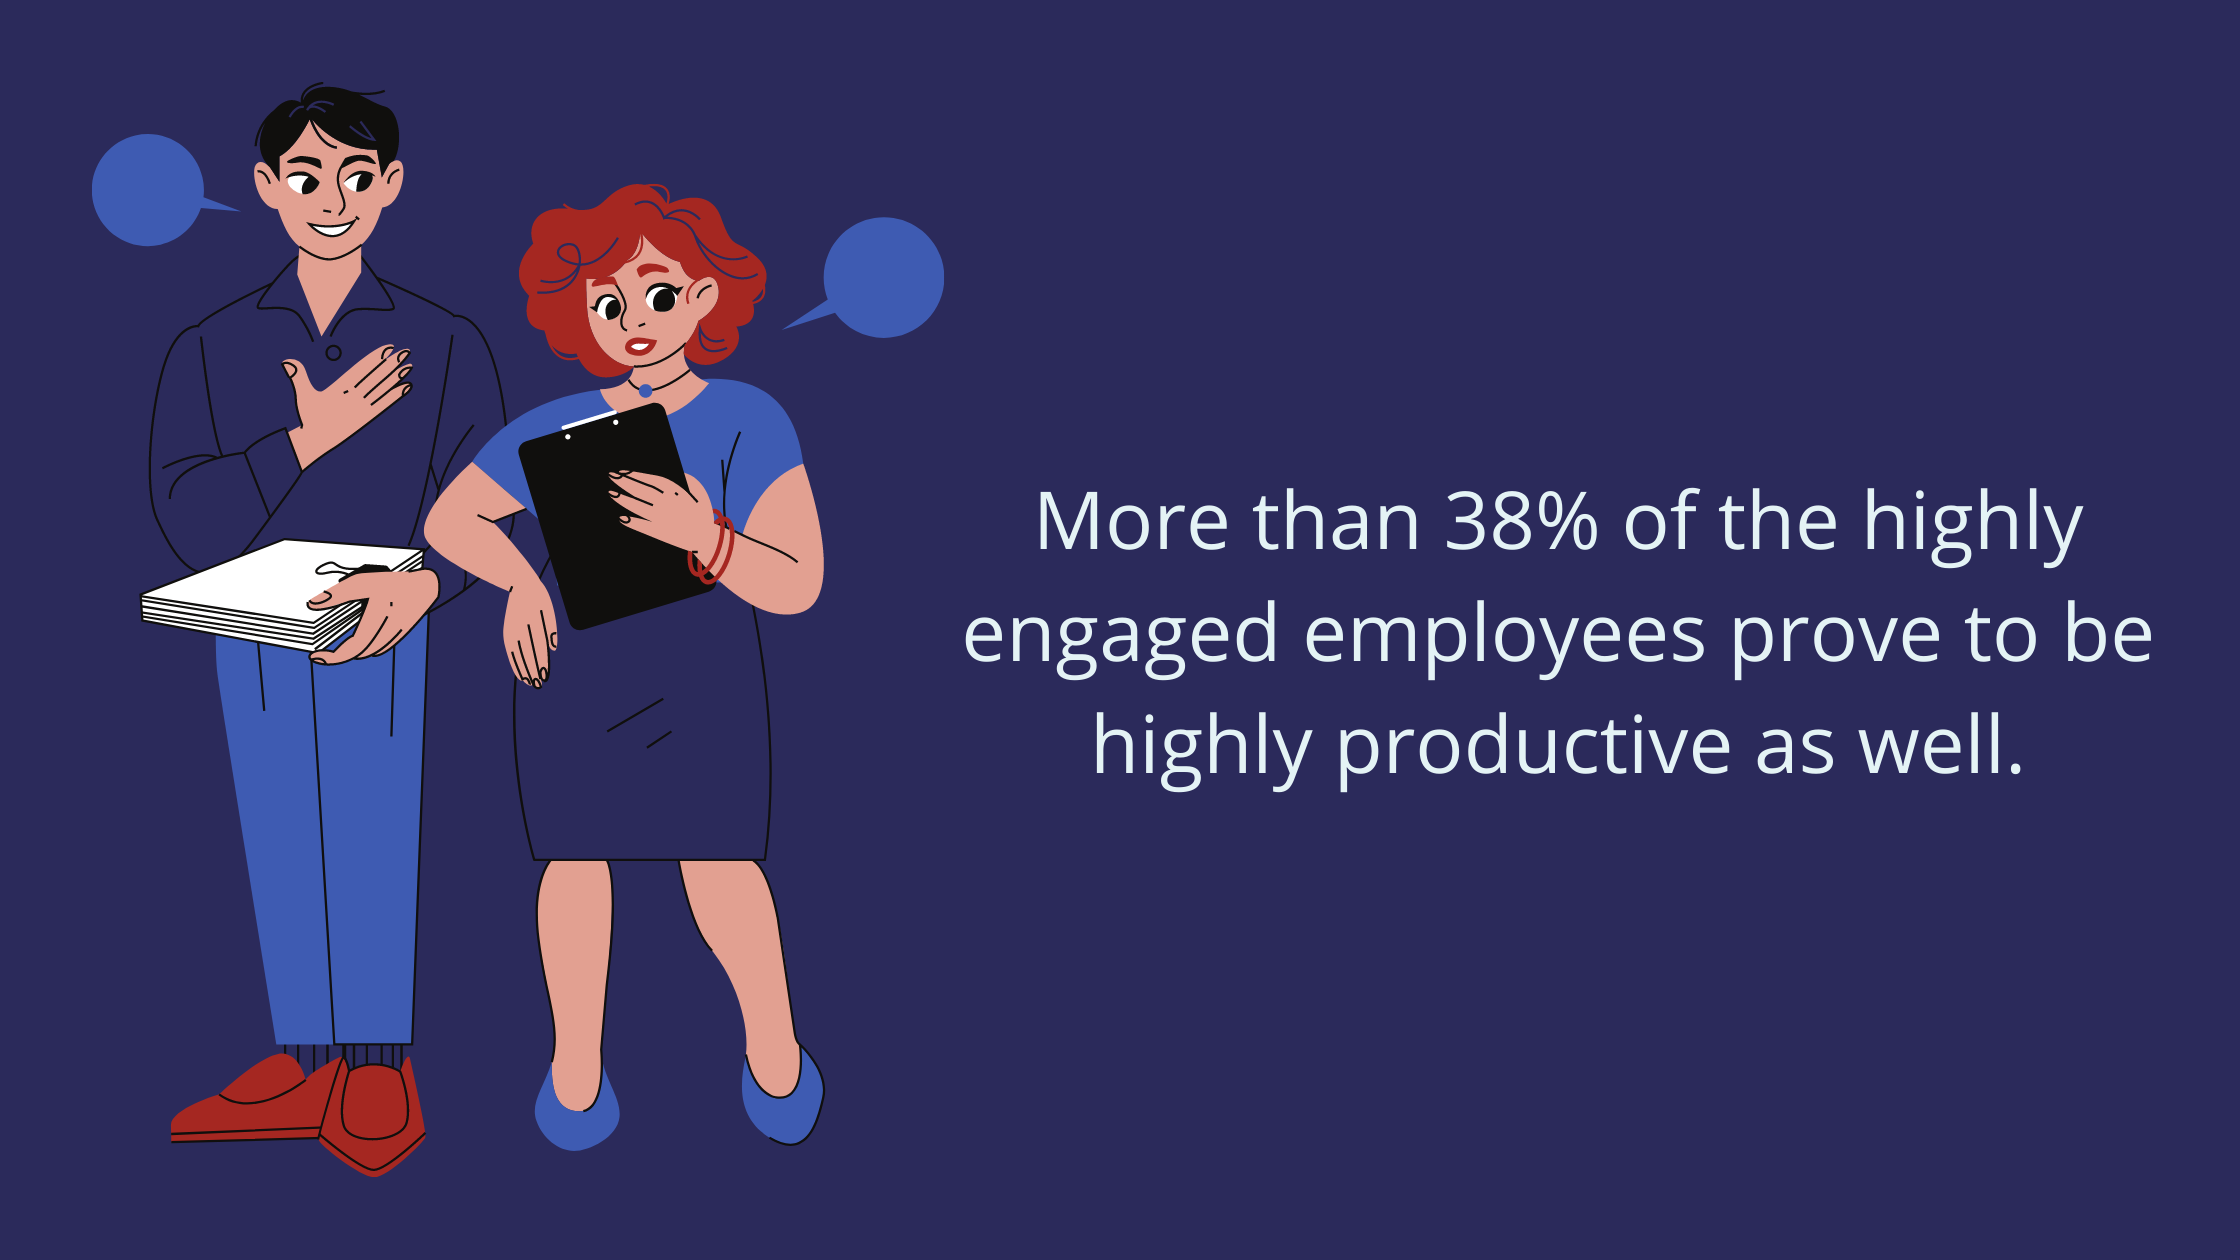 Workplace productivity stats on employee engagement